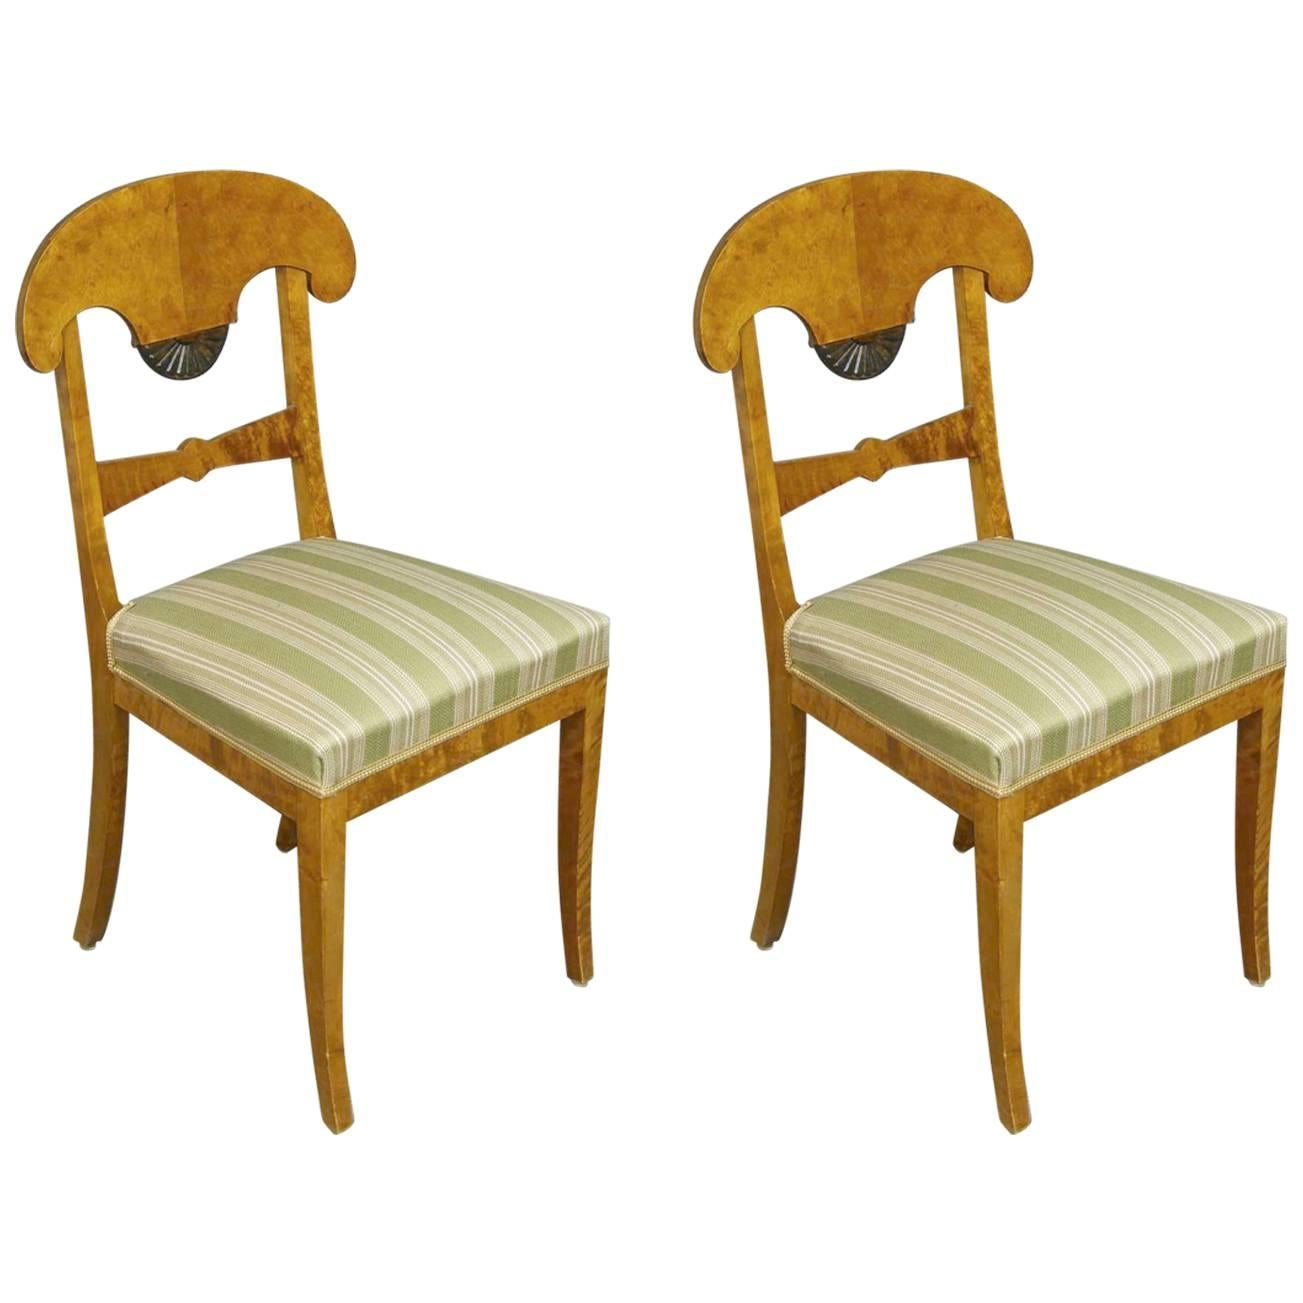 2 Antique Swedish Biedermeier Fan Motif Ormolu Style Chairs 1